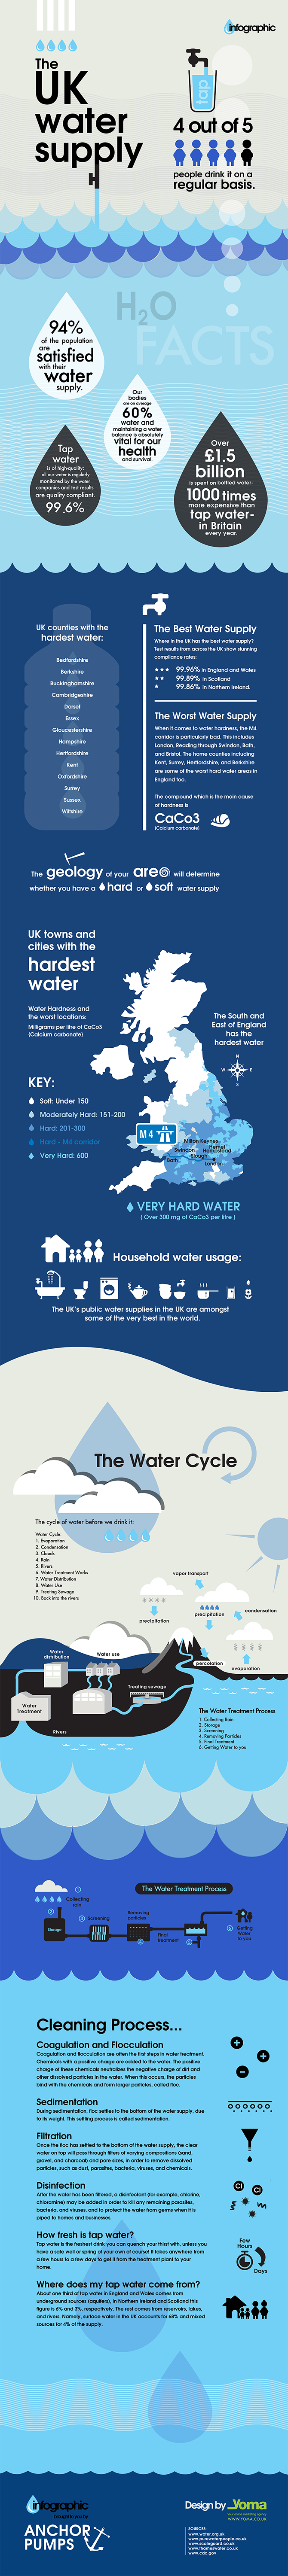 UK Water Quality